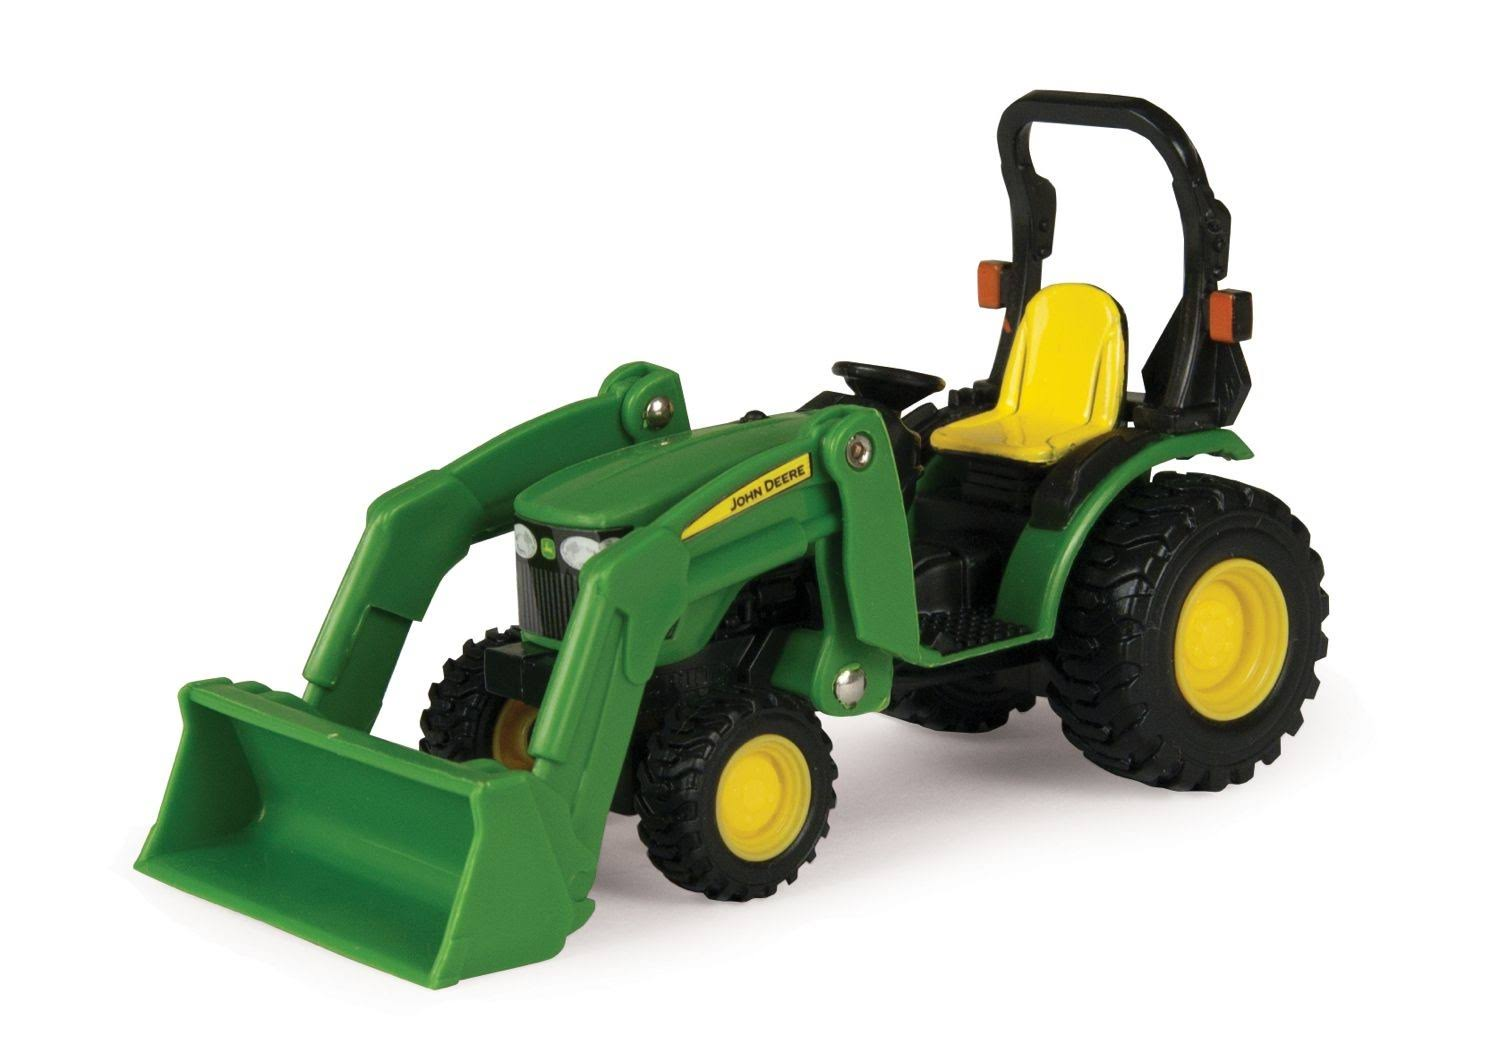 John Deere 46584 Tractor with Loader Toy - Scale 1:32